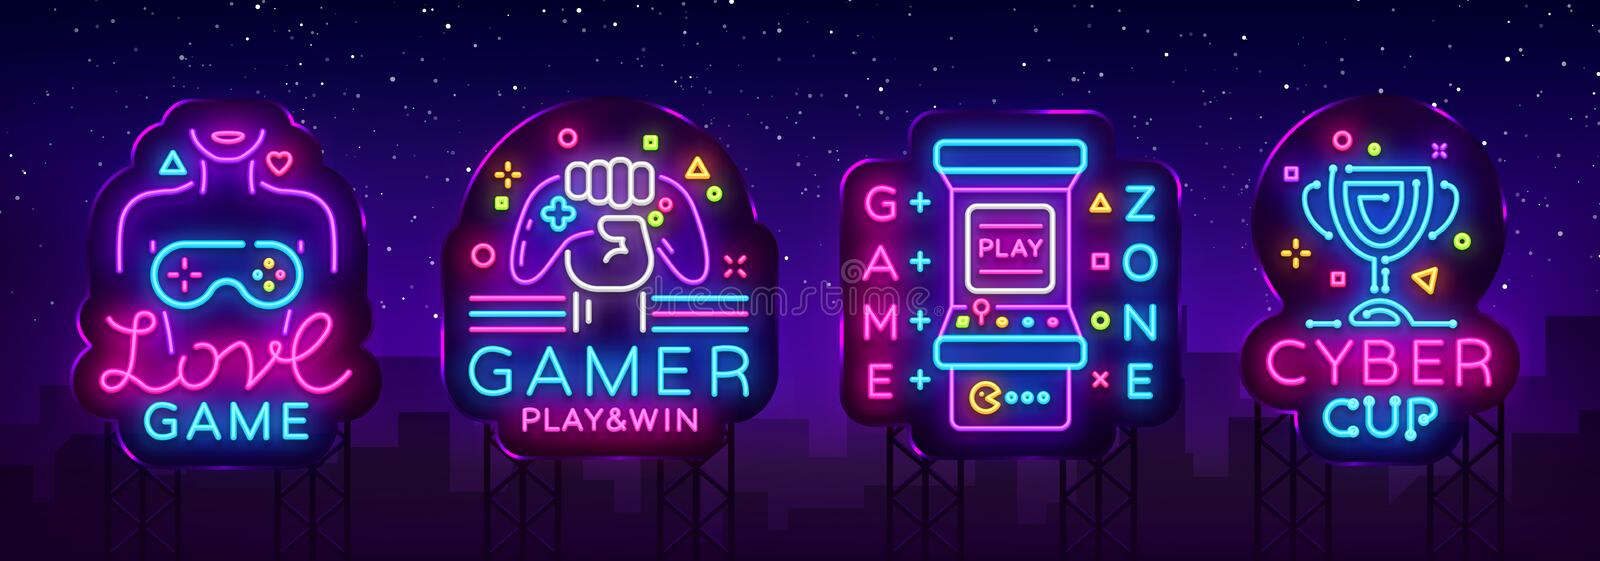 Video Game neon sign collection vector. Conceptual Logos, Love Game, Gamer logo, Game Zone, Cyber sport Emblem in Modern vector illustration